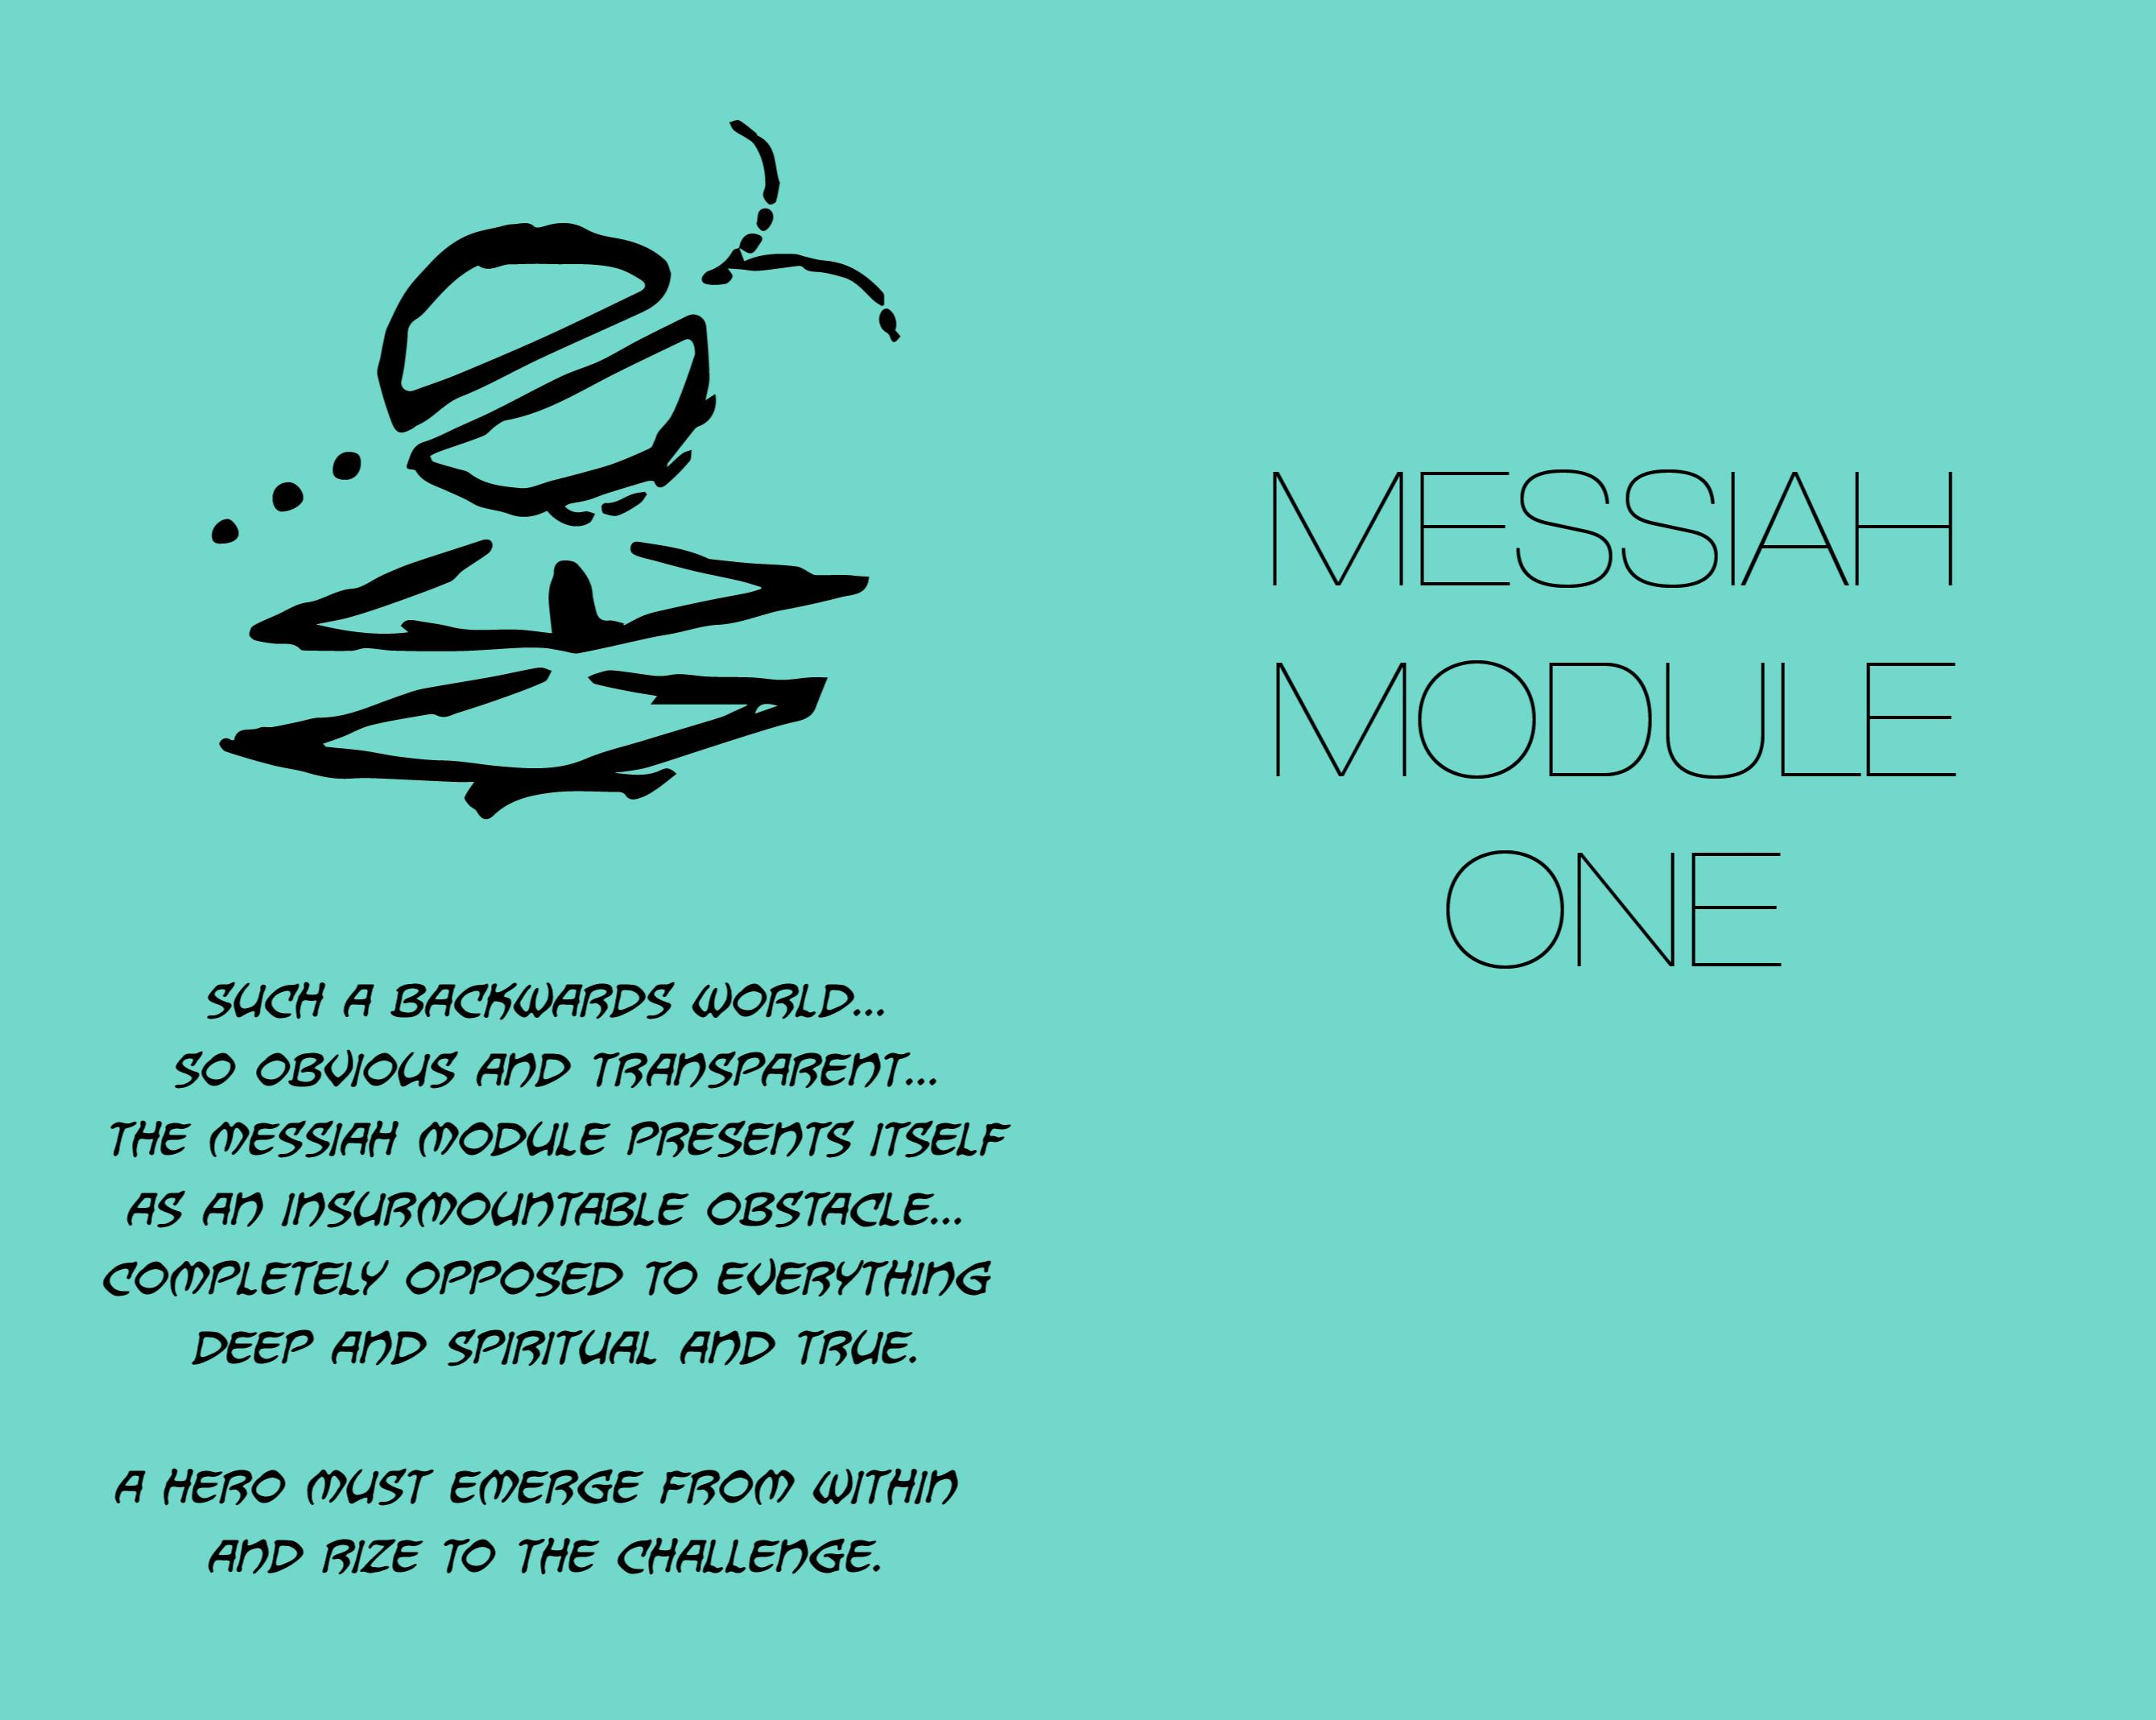 MESSIAH MODULE 1 cover image